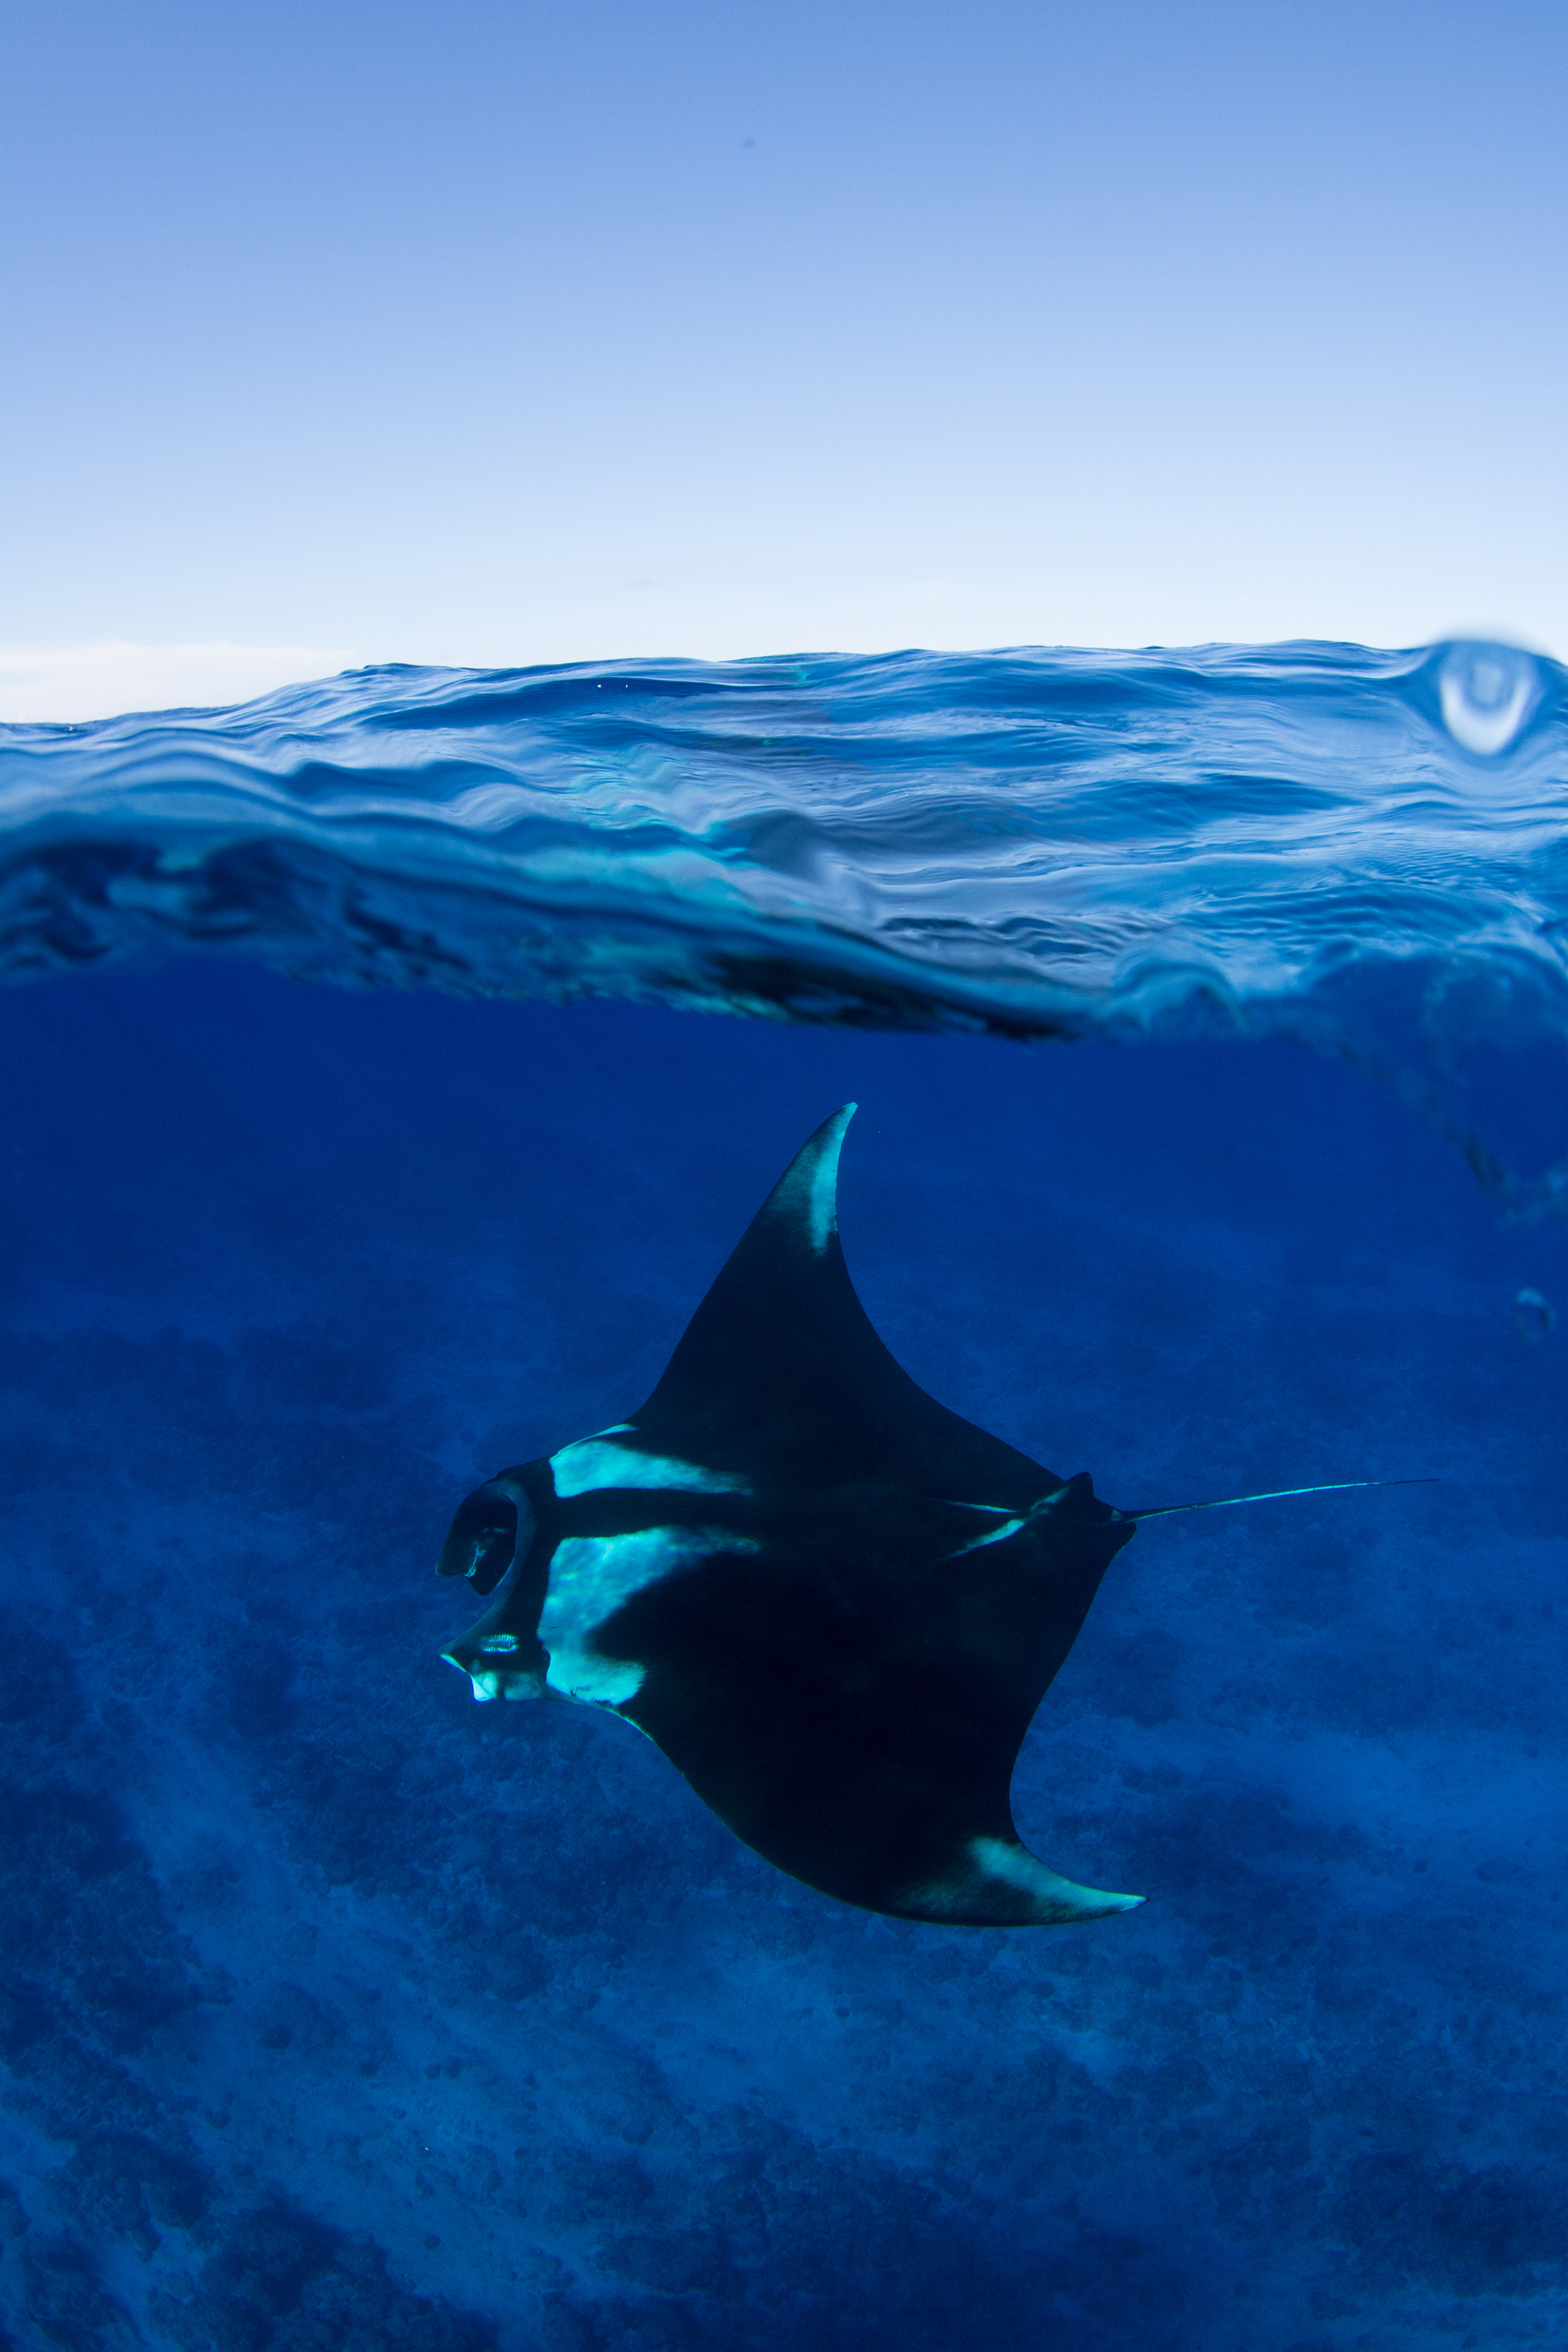 Oceanic Manta Ray Credit: Simon Hilbourne / Coral Reef Image Bank